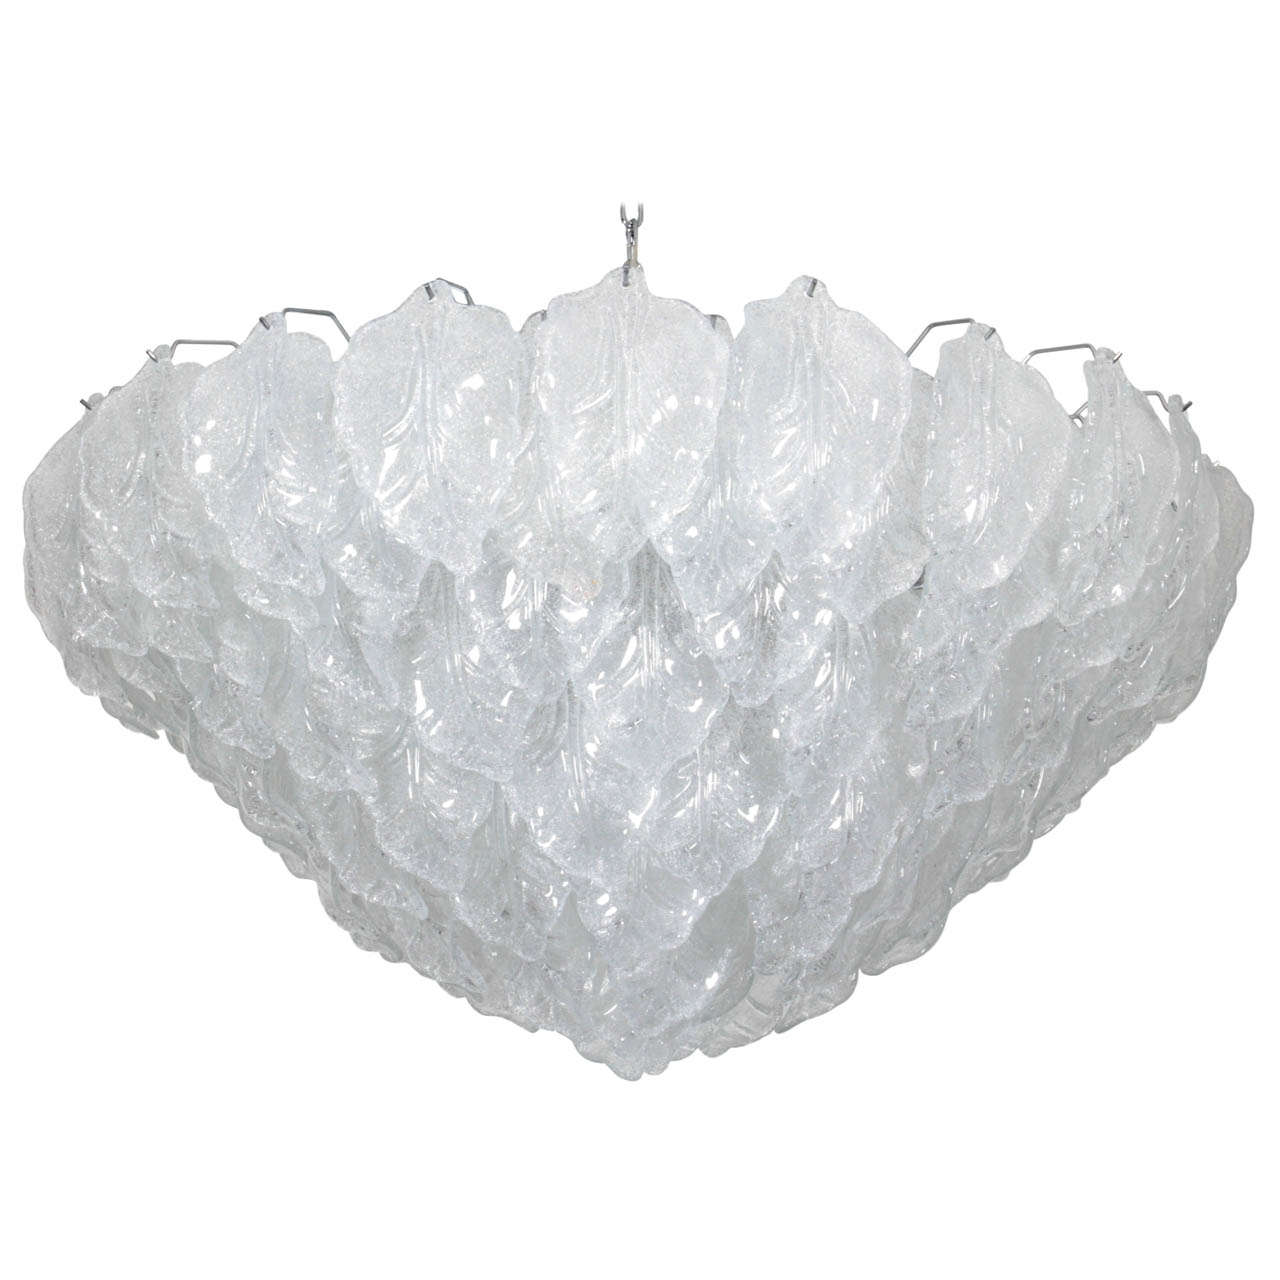 Italian Murano Semi Opaque White Glass Leaf Chandelier 42 Diameter For